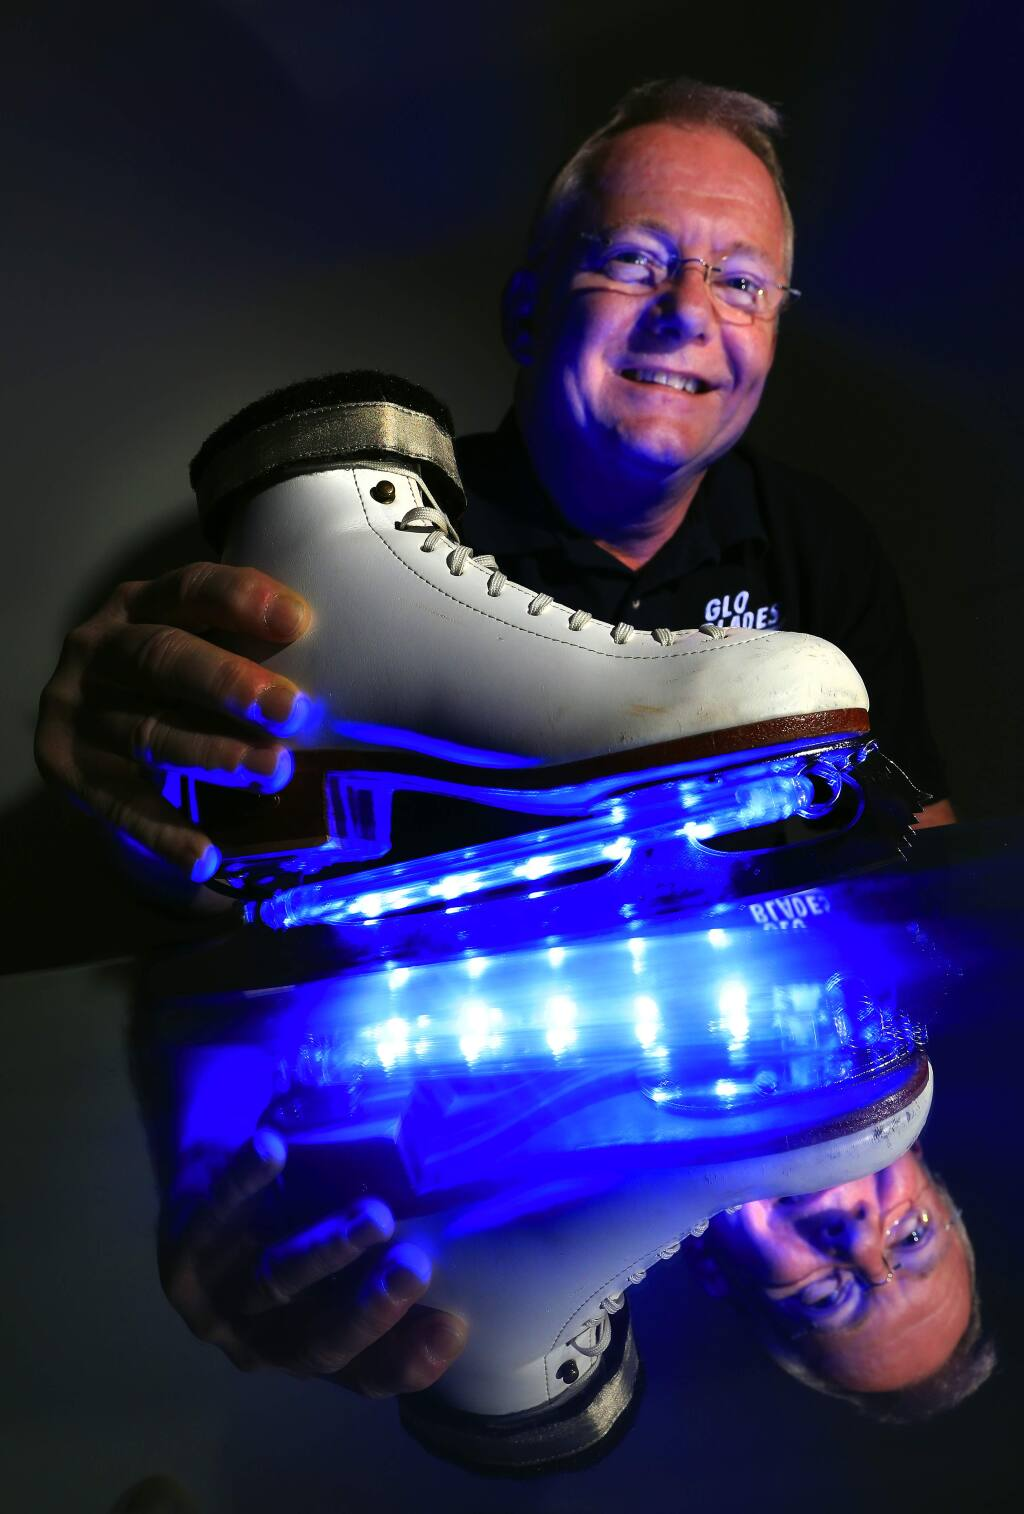 Ralph Haney invented 'Glo-Blades,' a color-changing led light system for ice skatess. (JOHN BURGESS / The Press Democrat)